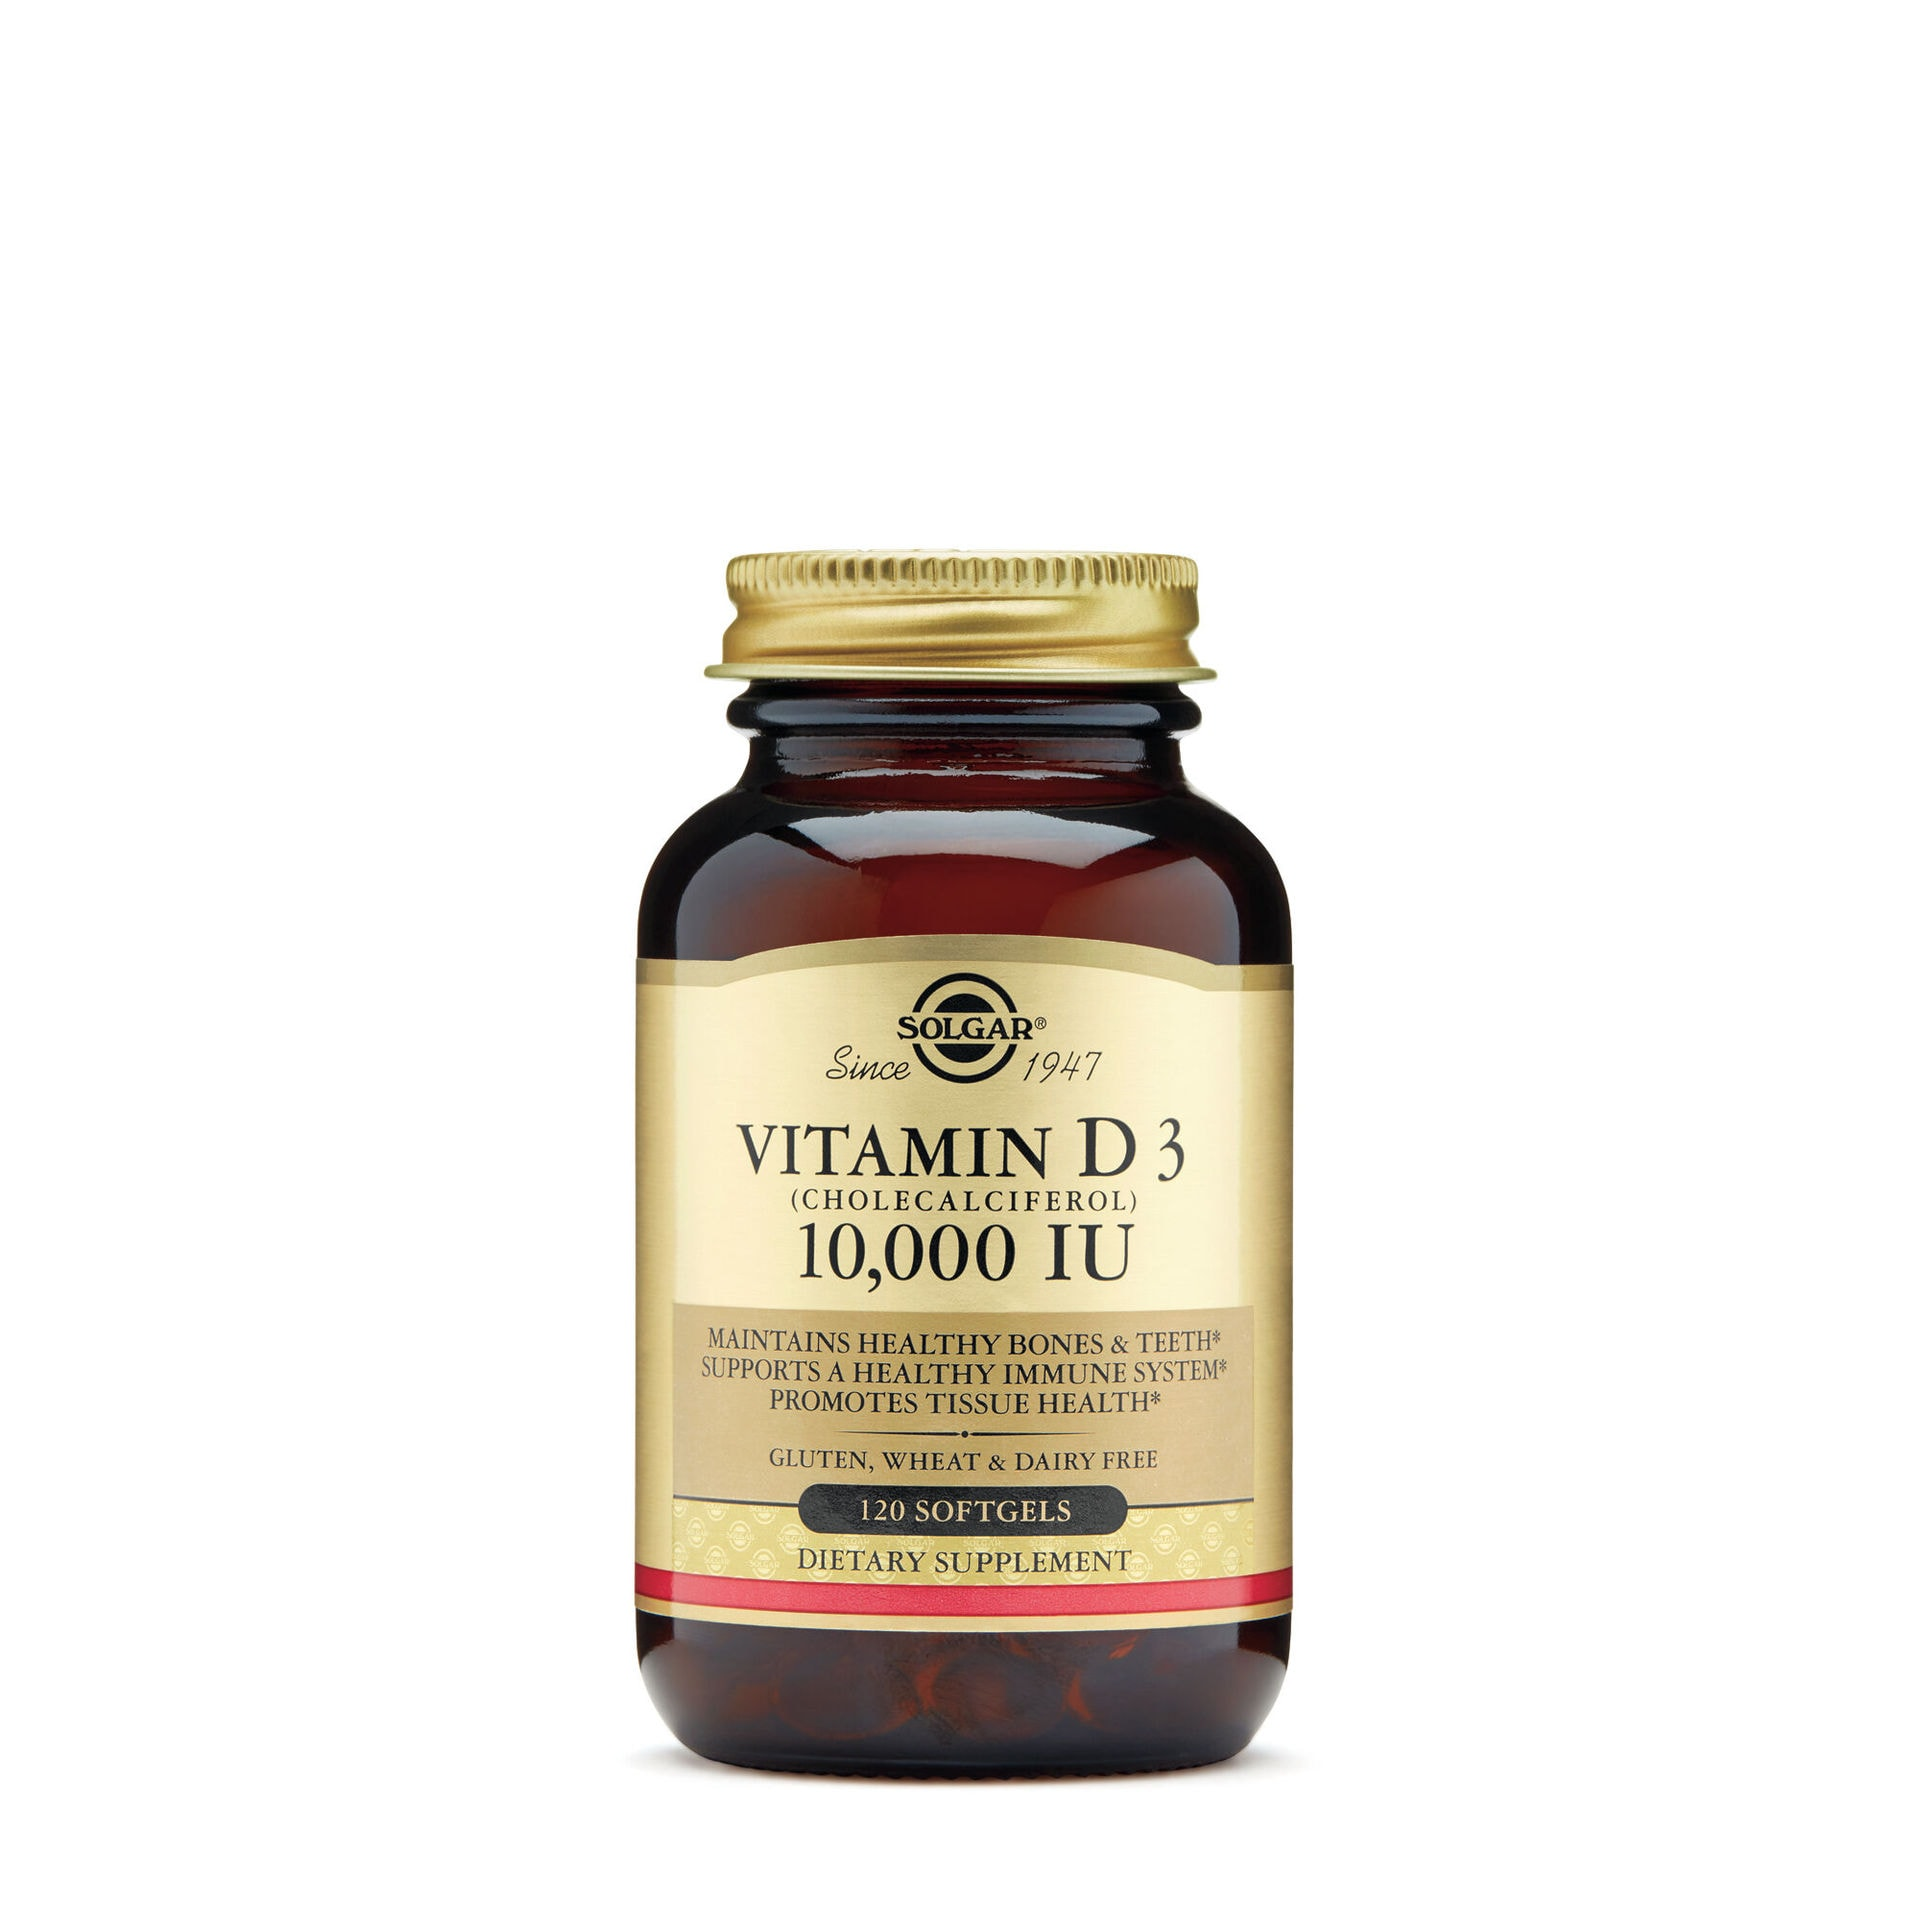 Crushed Vitamin D